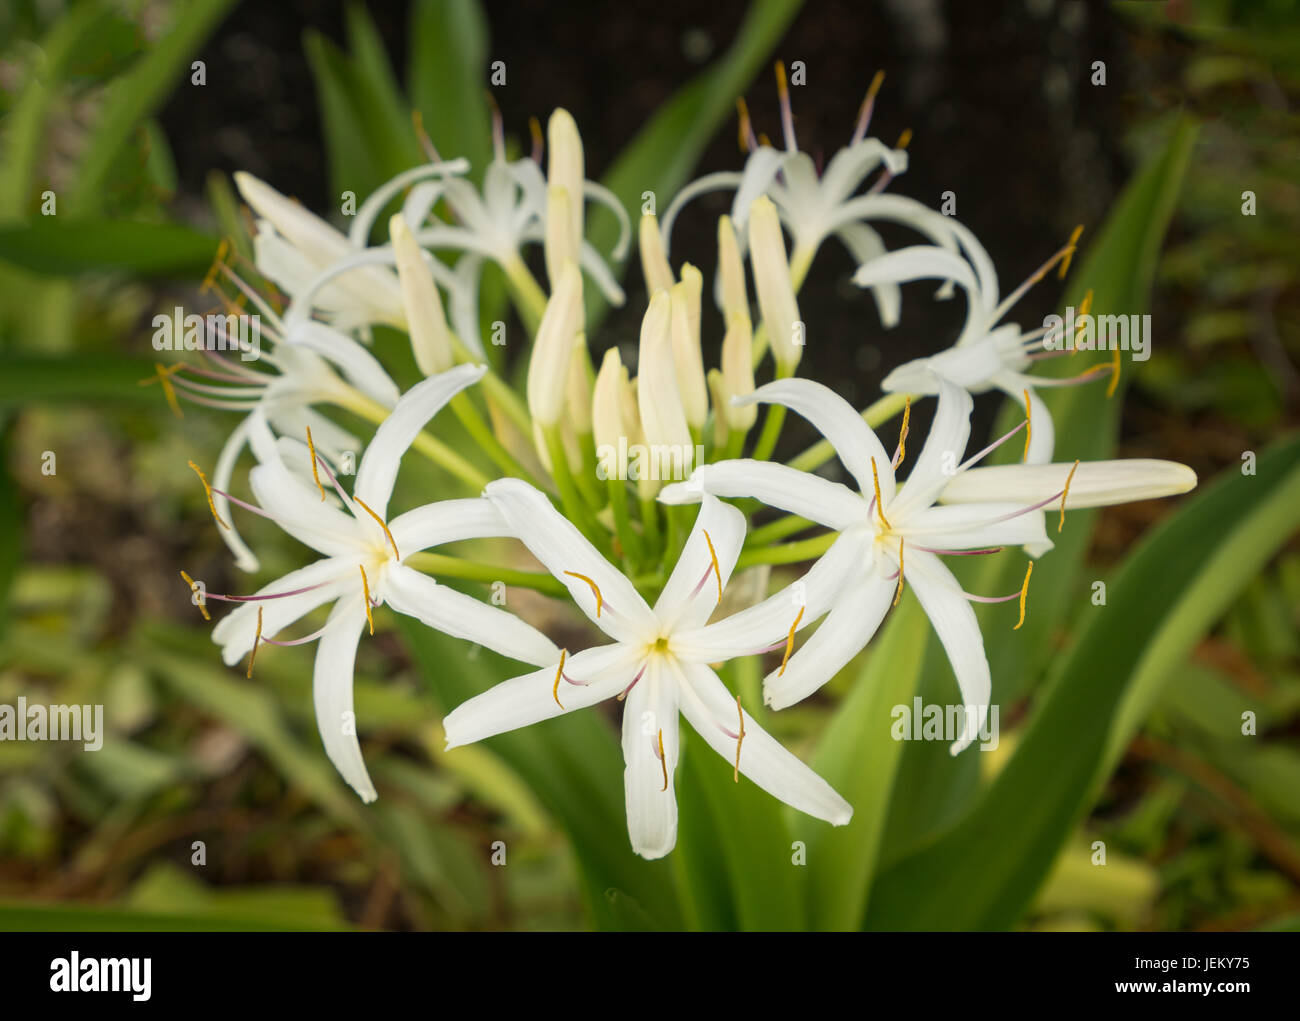 White spider lily flower in shade of a tree stock photo 146726585 white spider lily flower in shade of a tree izmirmasajfo